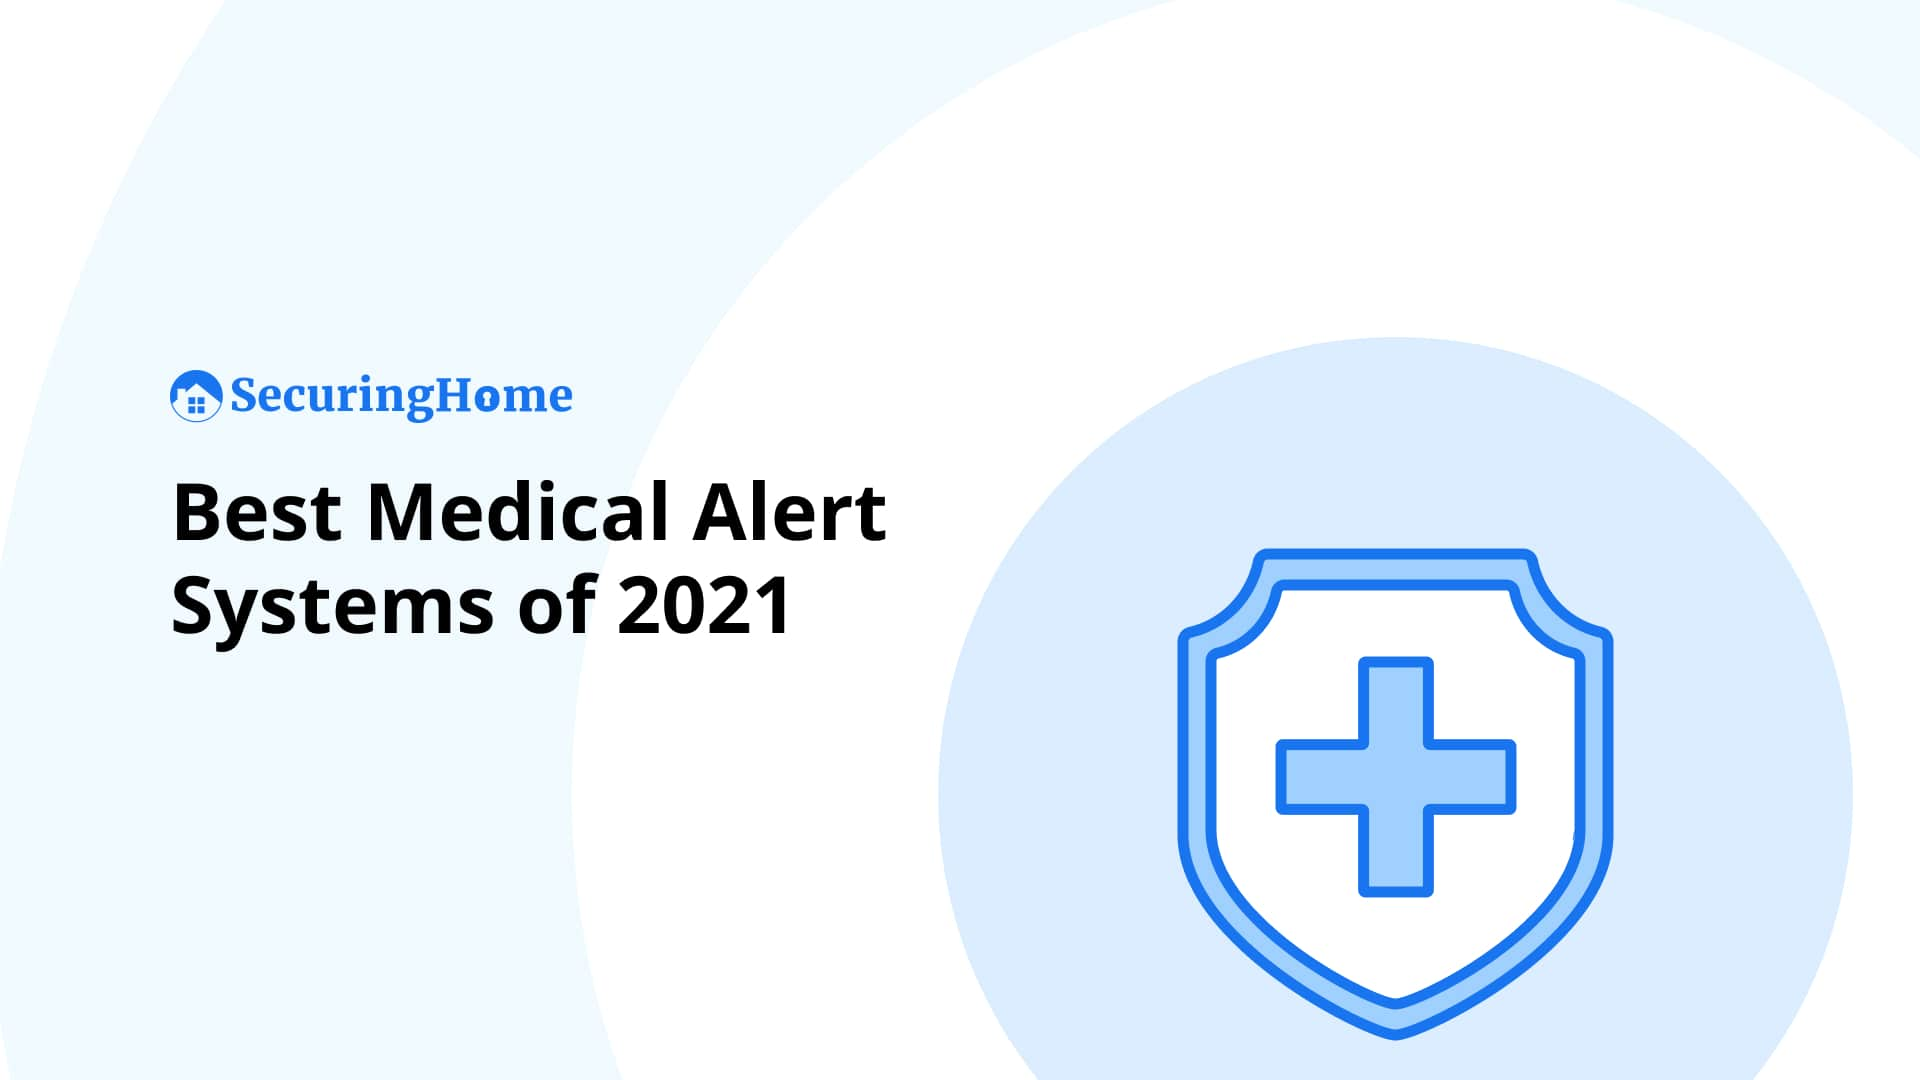 Top 10 Best Medical Alert Systems of 2021